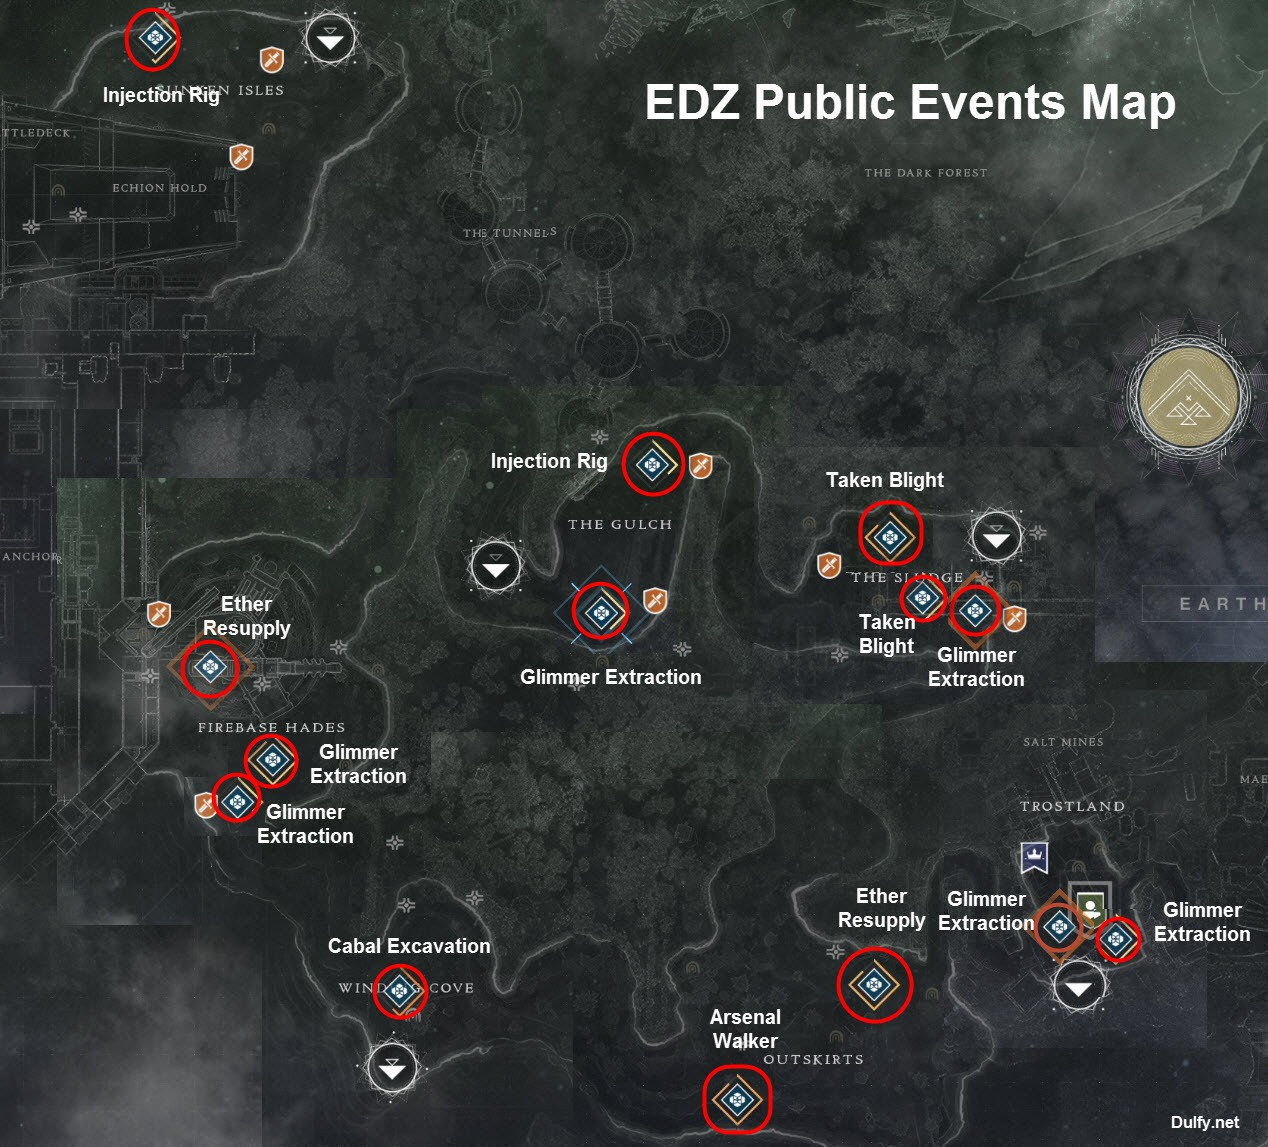 Destiny 2 Heroic Public Events Guide - Dulfy